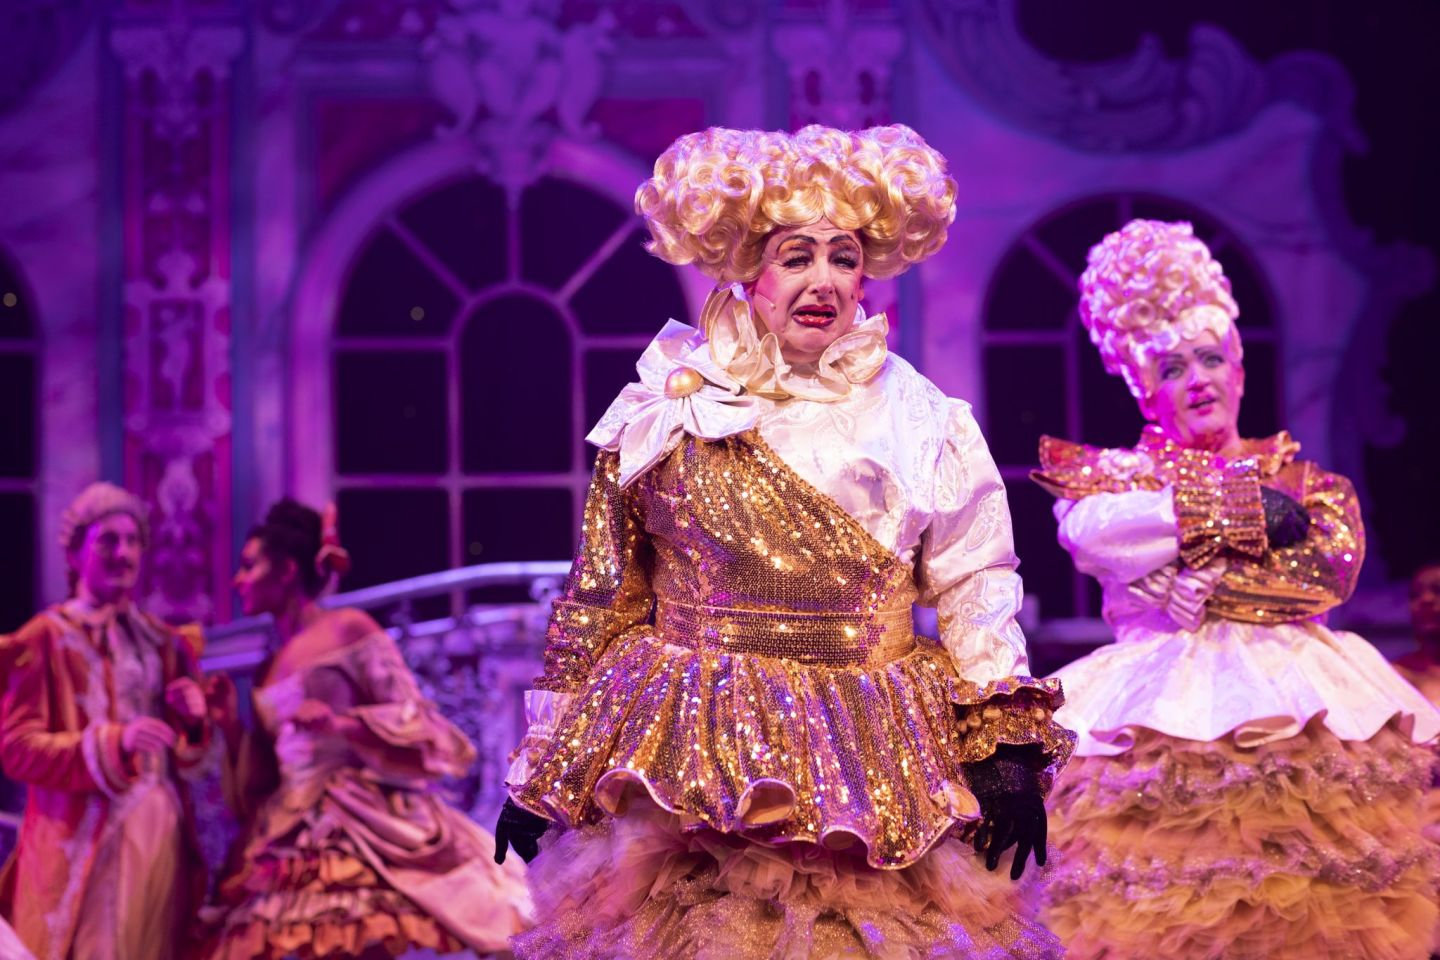 Connor McIntyre and Les Dennis as the Ugly Sister in Cinderella